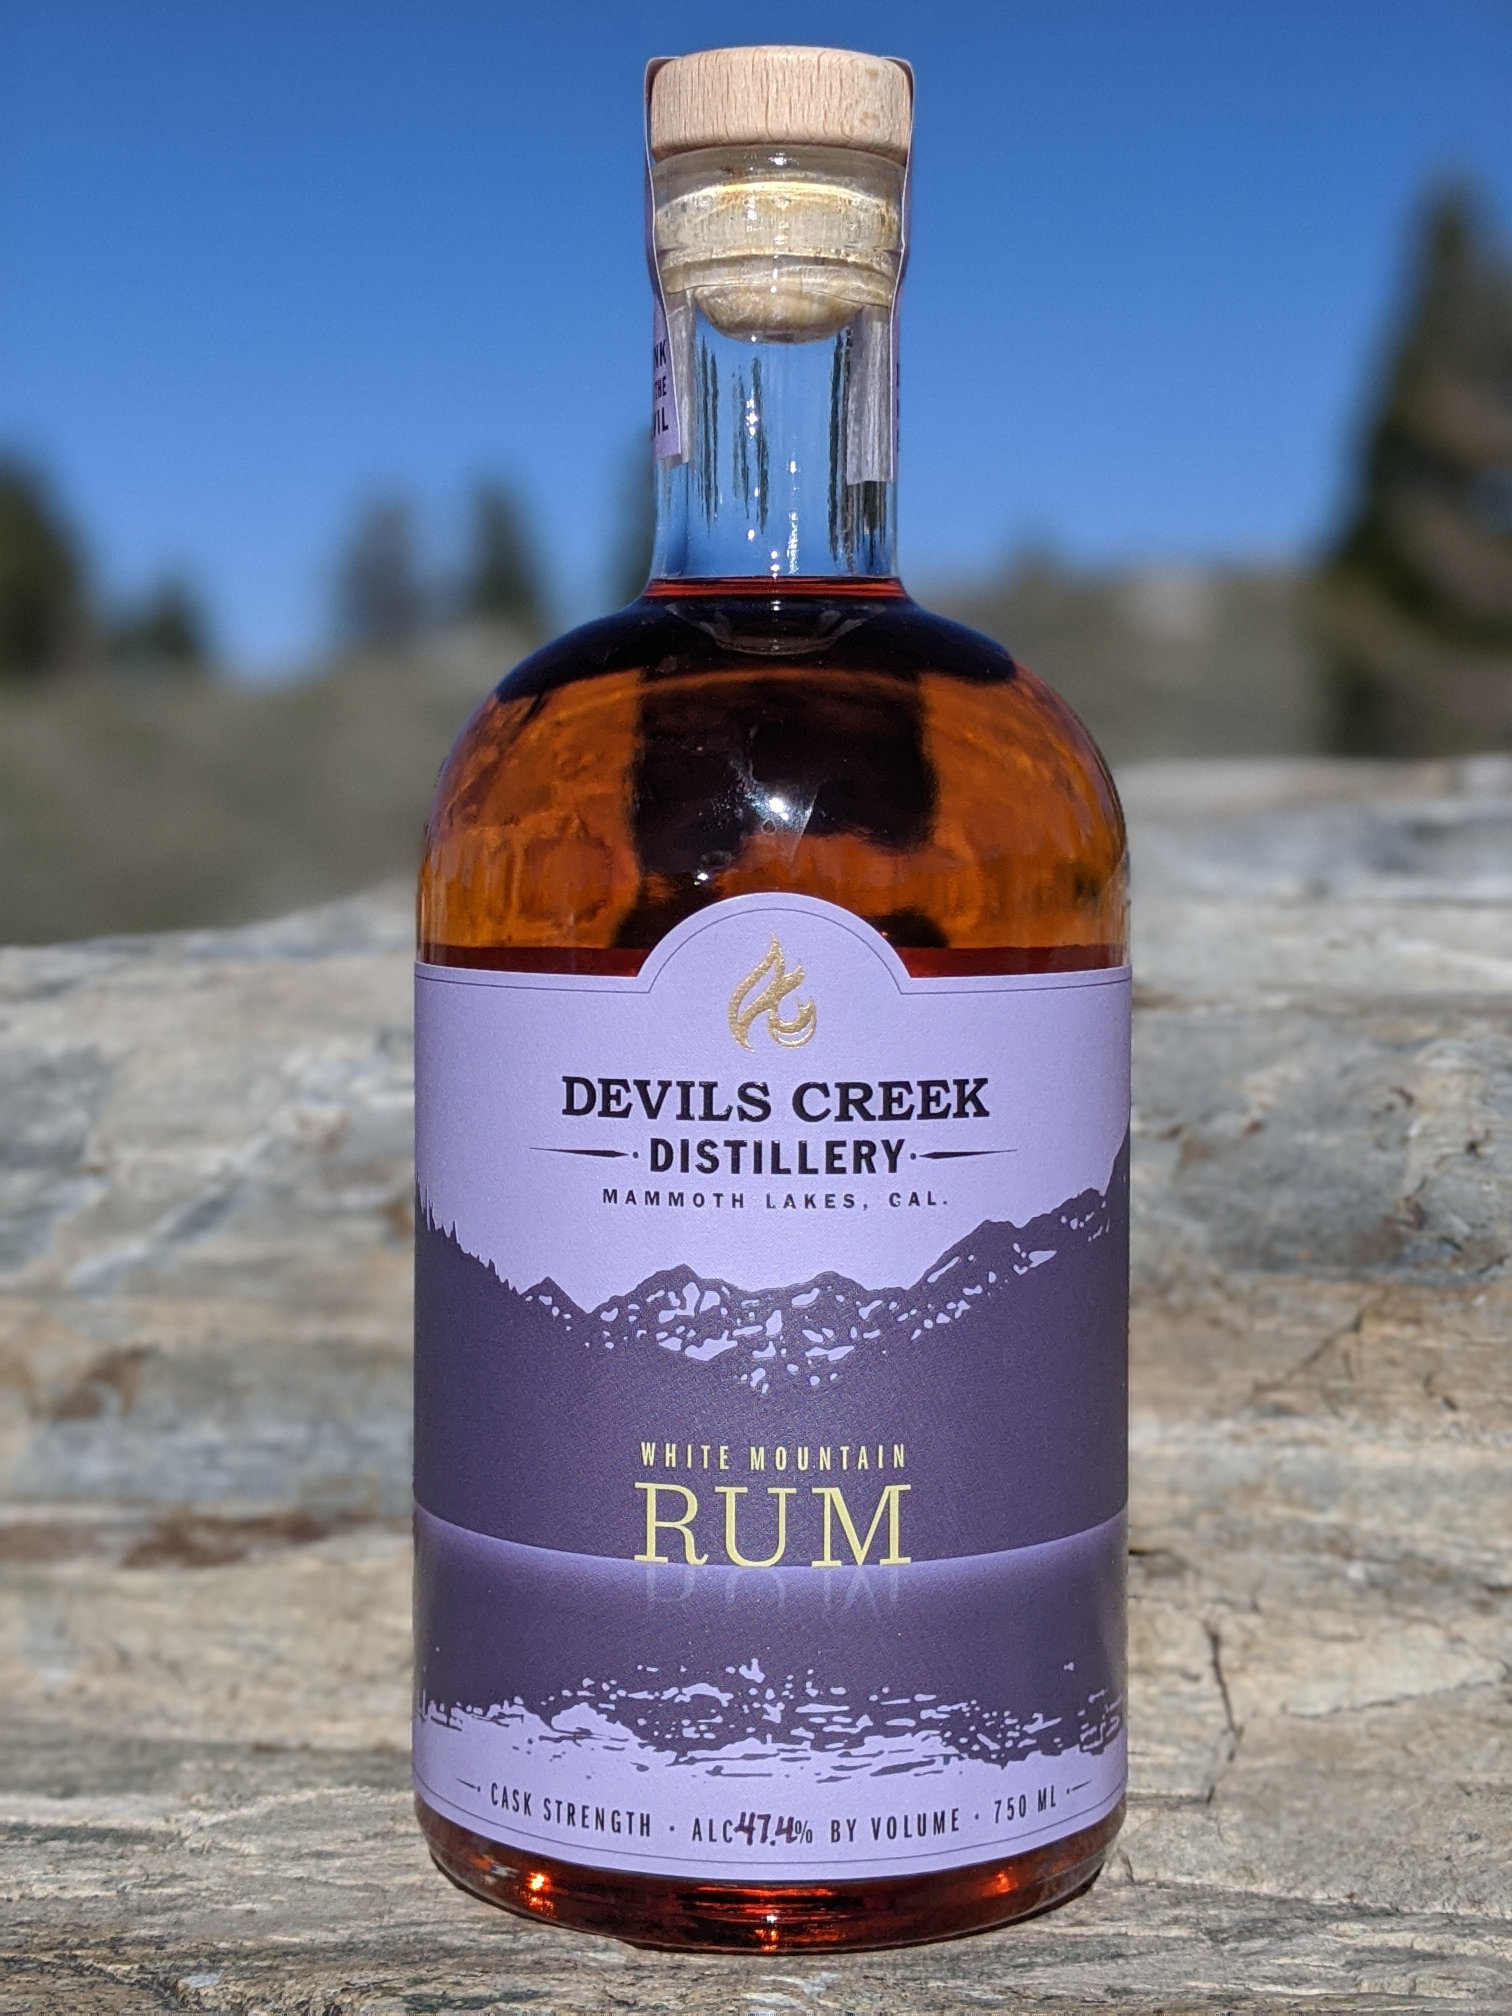 White Mountain Rum